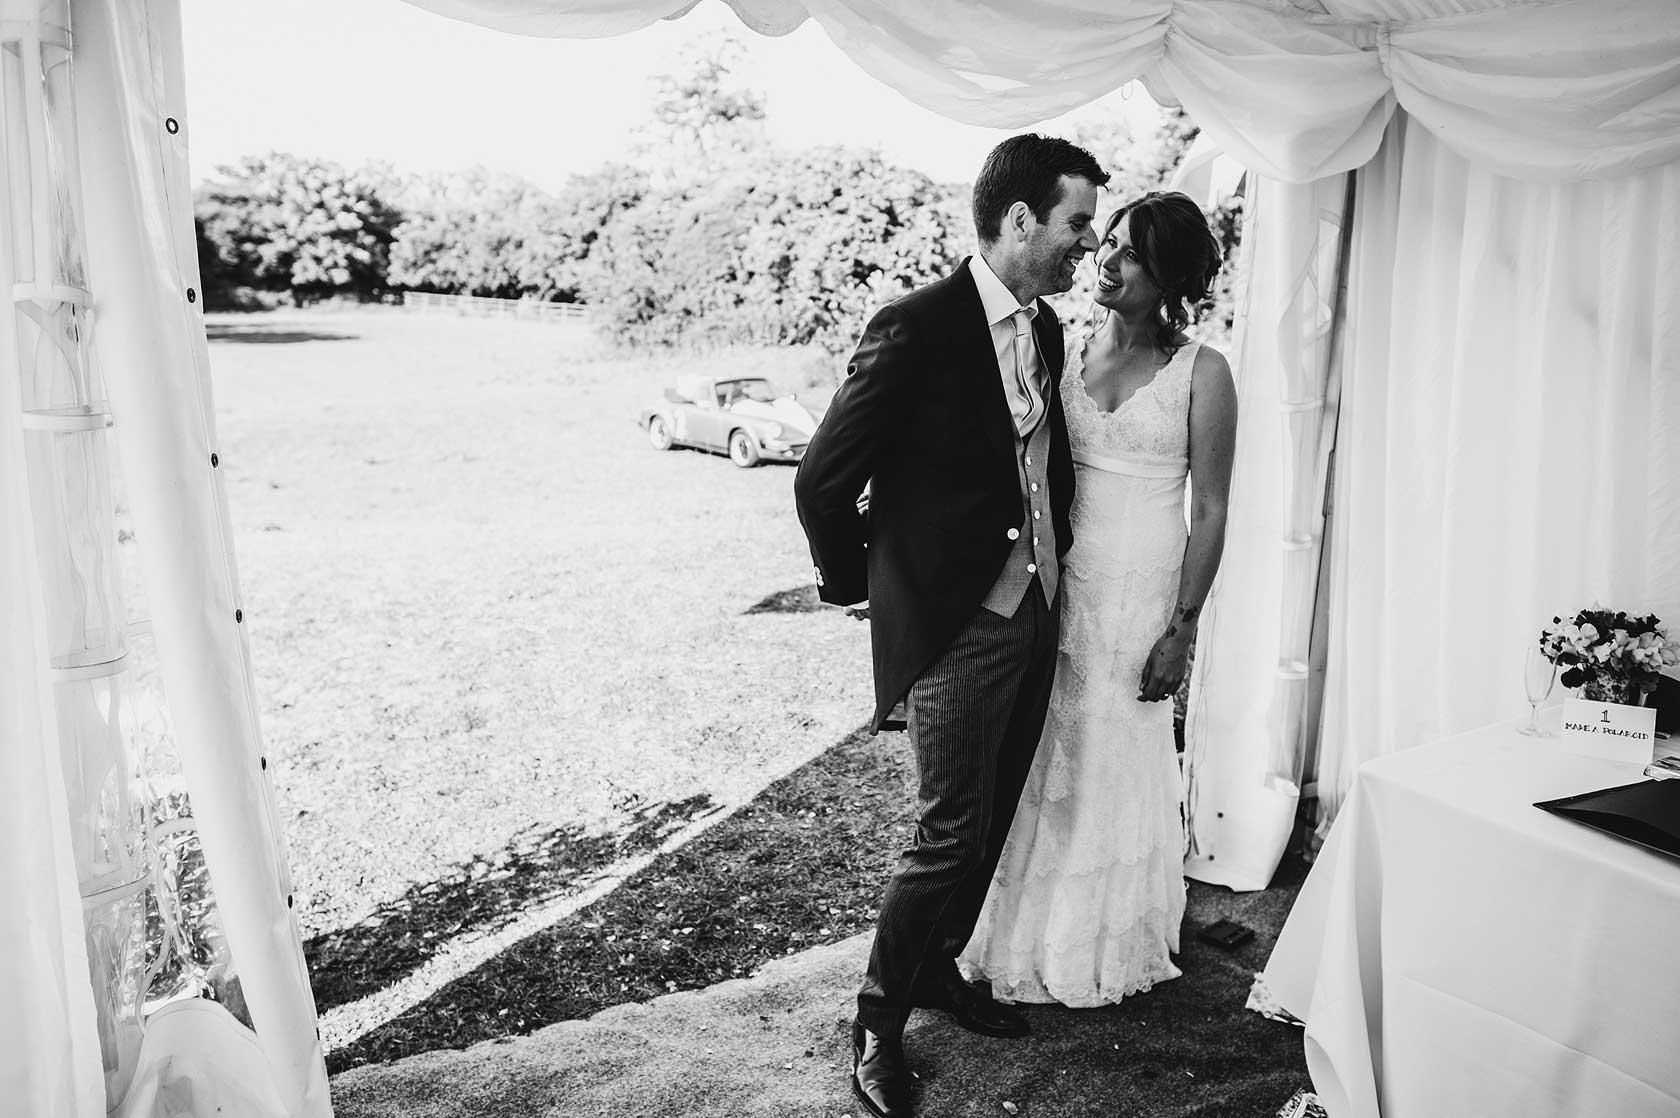 Reportage Wedding Photography in a marquee